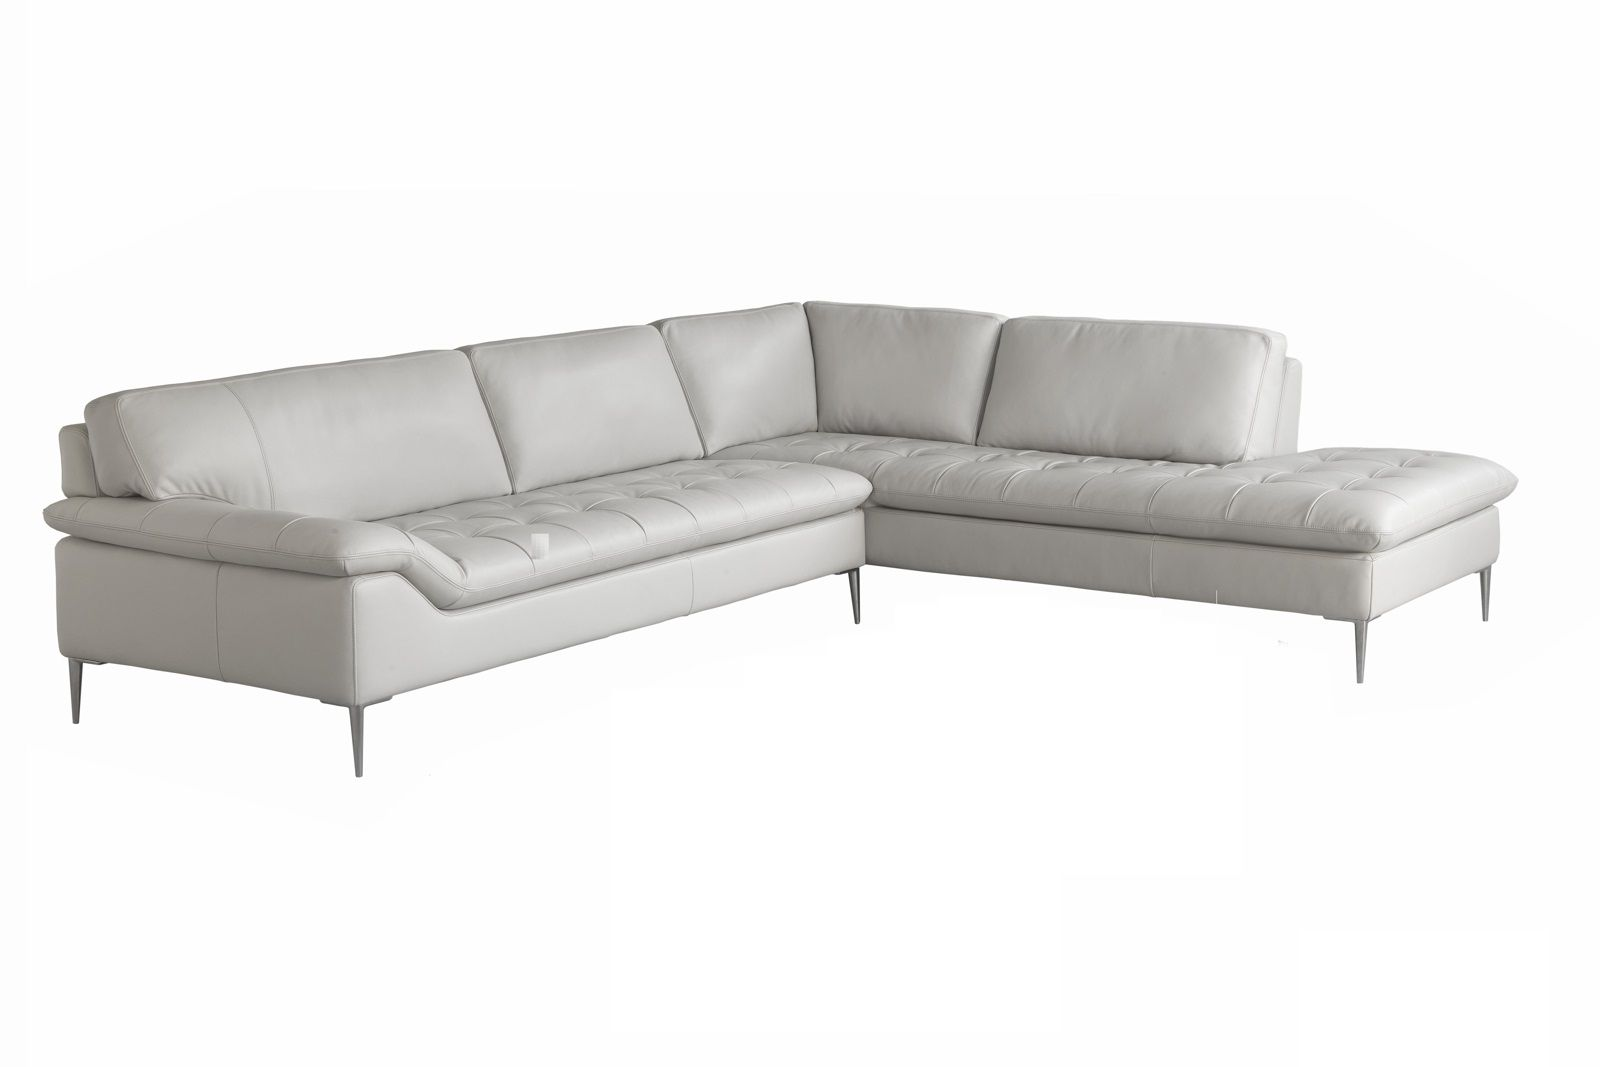 Elite Leather Peninsula Sectional Bloomingdale S Loft Livingroom Pinterest Lofts And Room